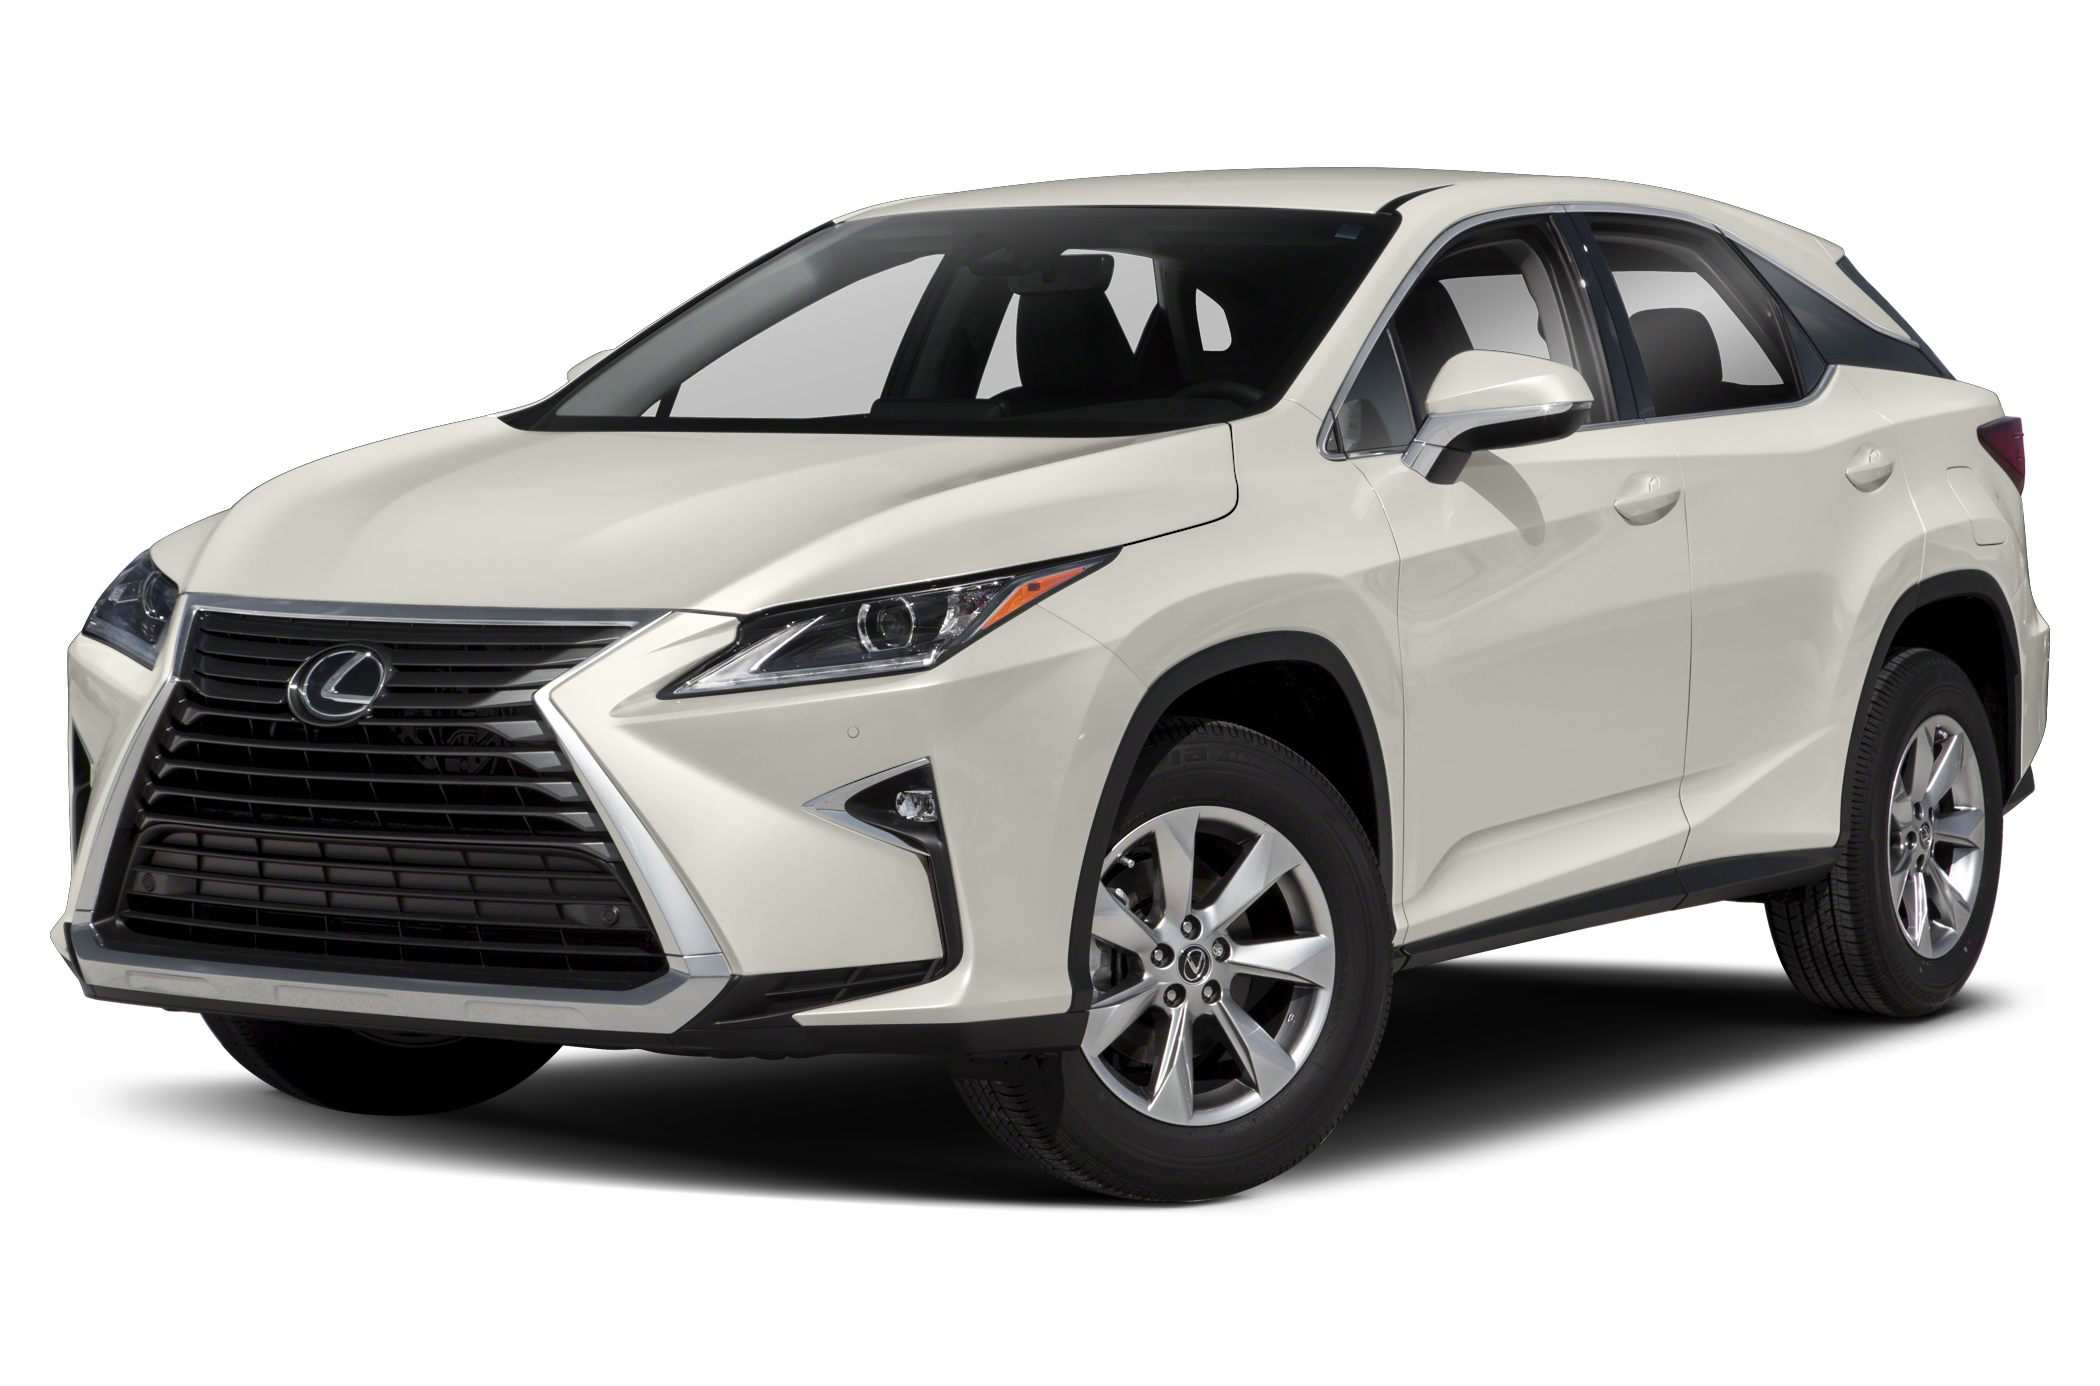 55 The Best When Will The 2020 Lexus Rx Come Out Ratings